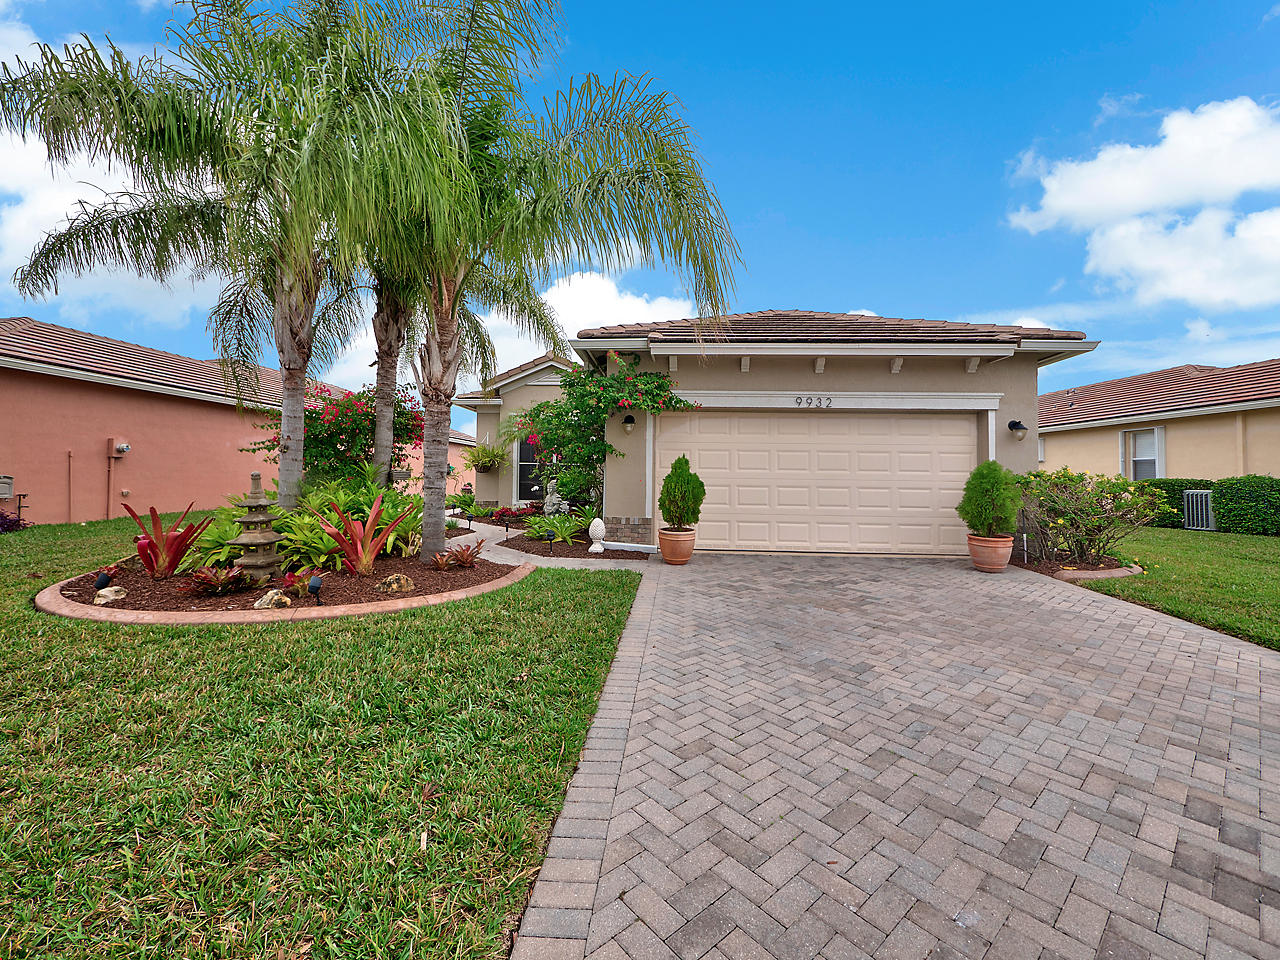 Beautiful 3 Bed, 2 Bth, 2 CG. This home features a manicured front lawn with lots of curb appeal in Heritage Oaks at Tradition. As you walk in your welcomed by a spacious formal living area and large windows for lots of light, the kitchen is updated with granite counters, stainless steel appliances and plenty of space, The kitchen is open to the living area, dining area and the breakfast nook. In the back you'll find an screened patio overlooking a peaceful lake. The Master offers a walk-in closet and double sinks. Must see to really understand the beauty of this property and community!